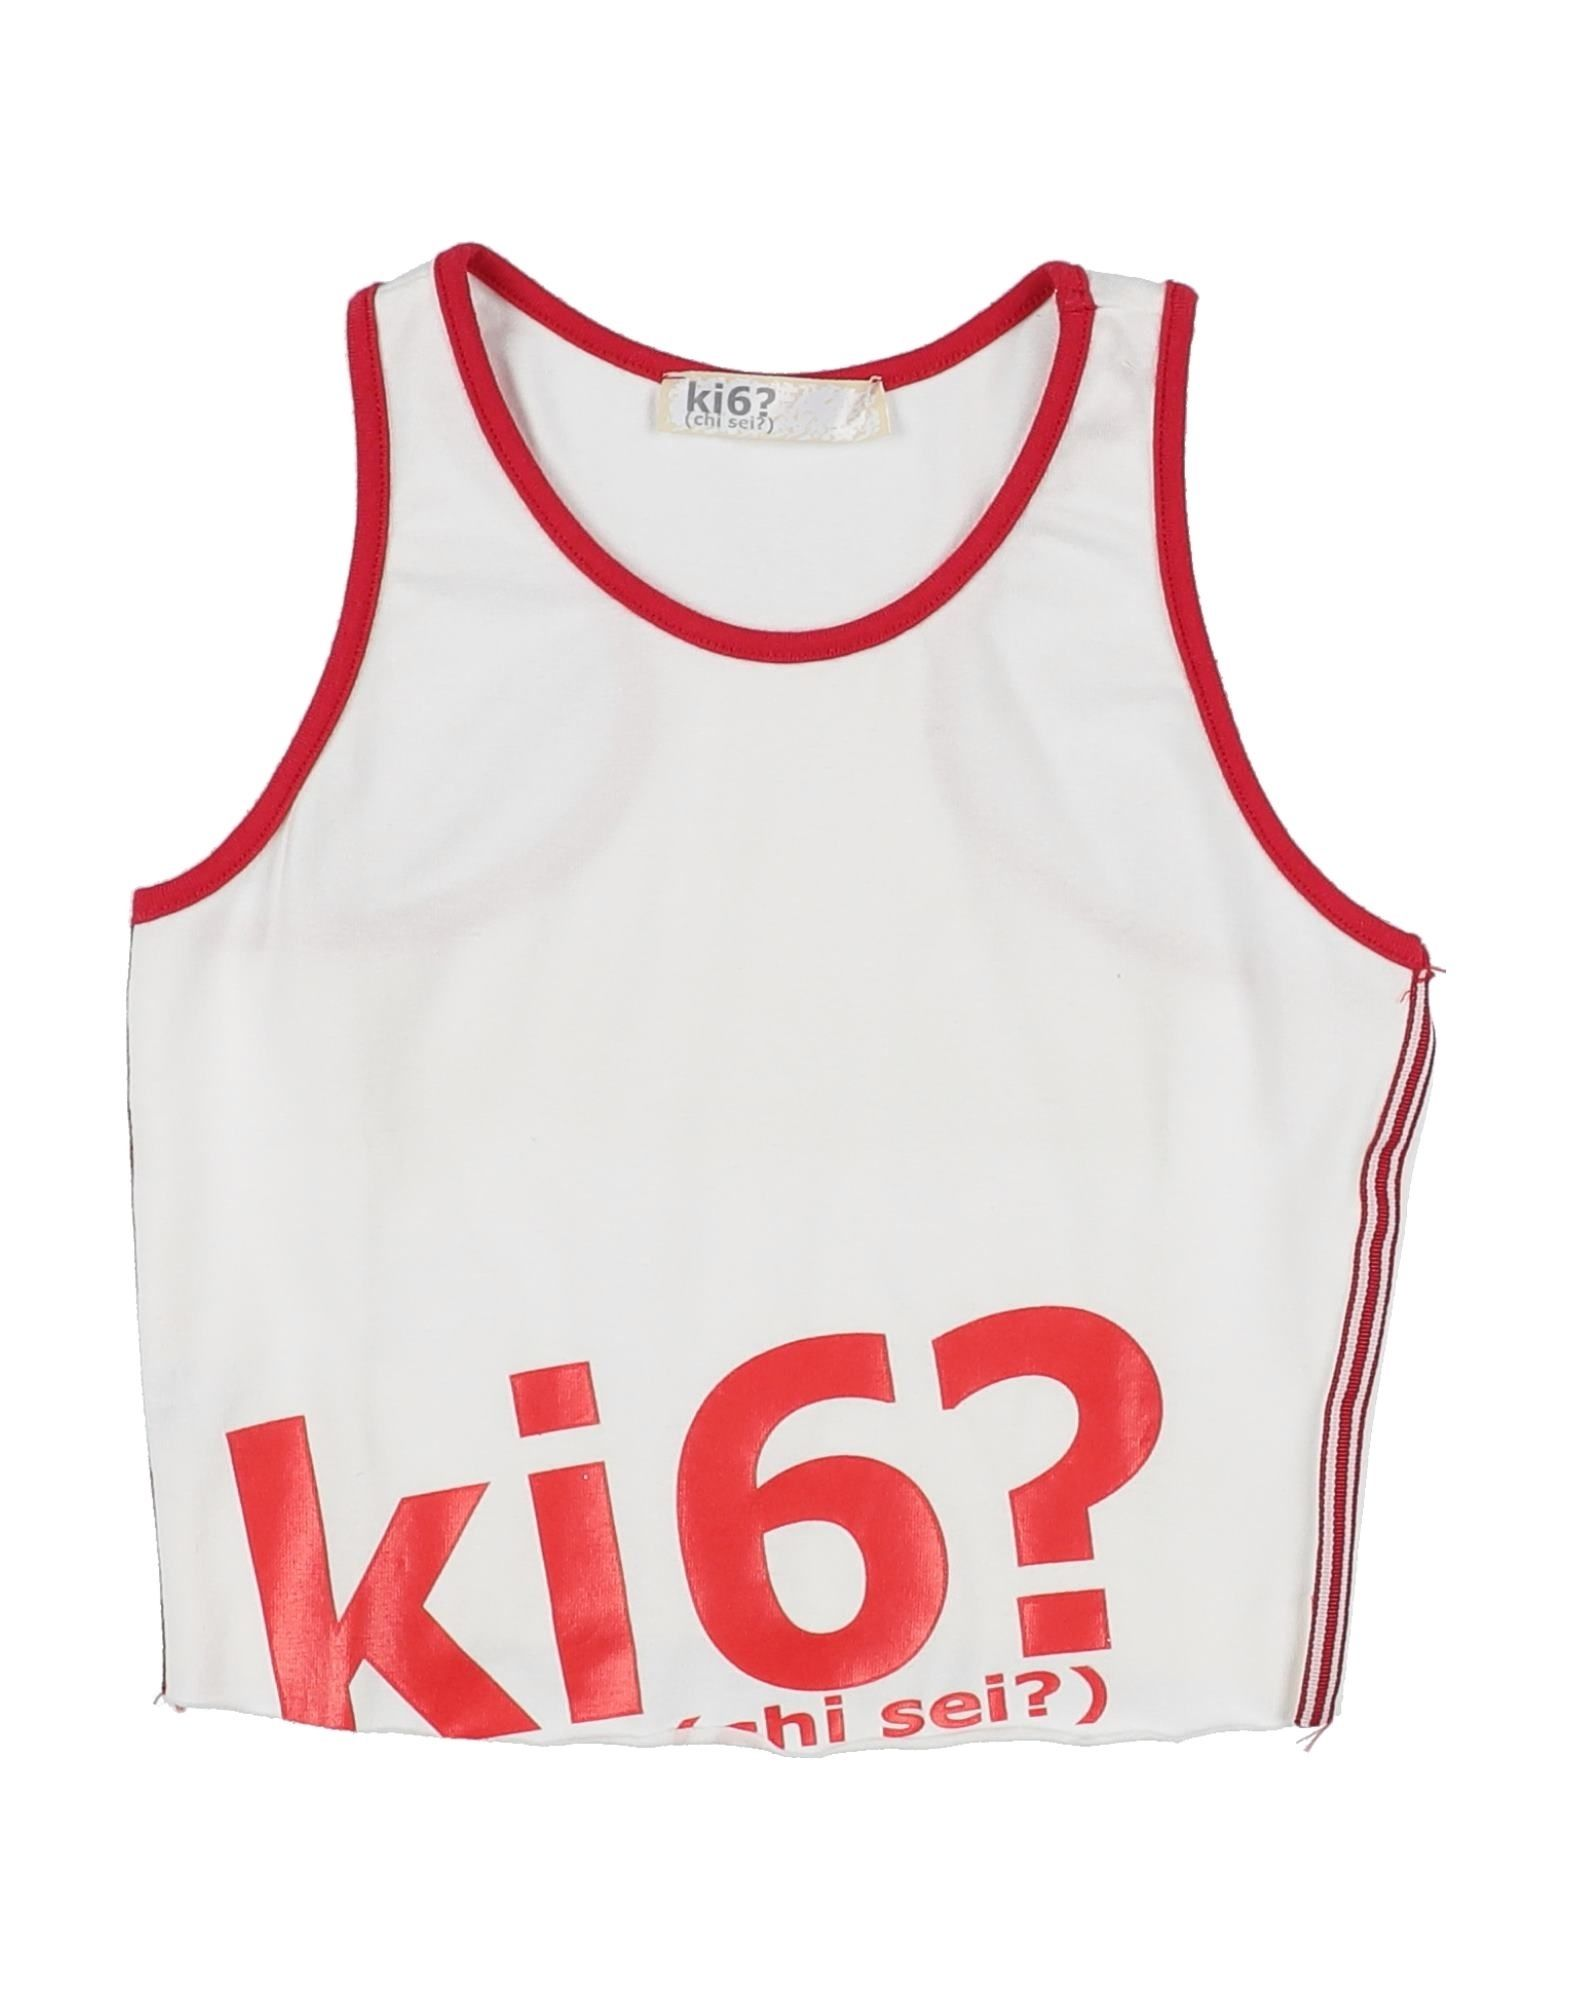 Ki6? Who Are You? Kids'  T-shirts In White